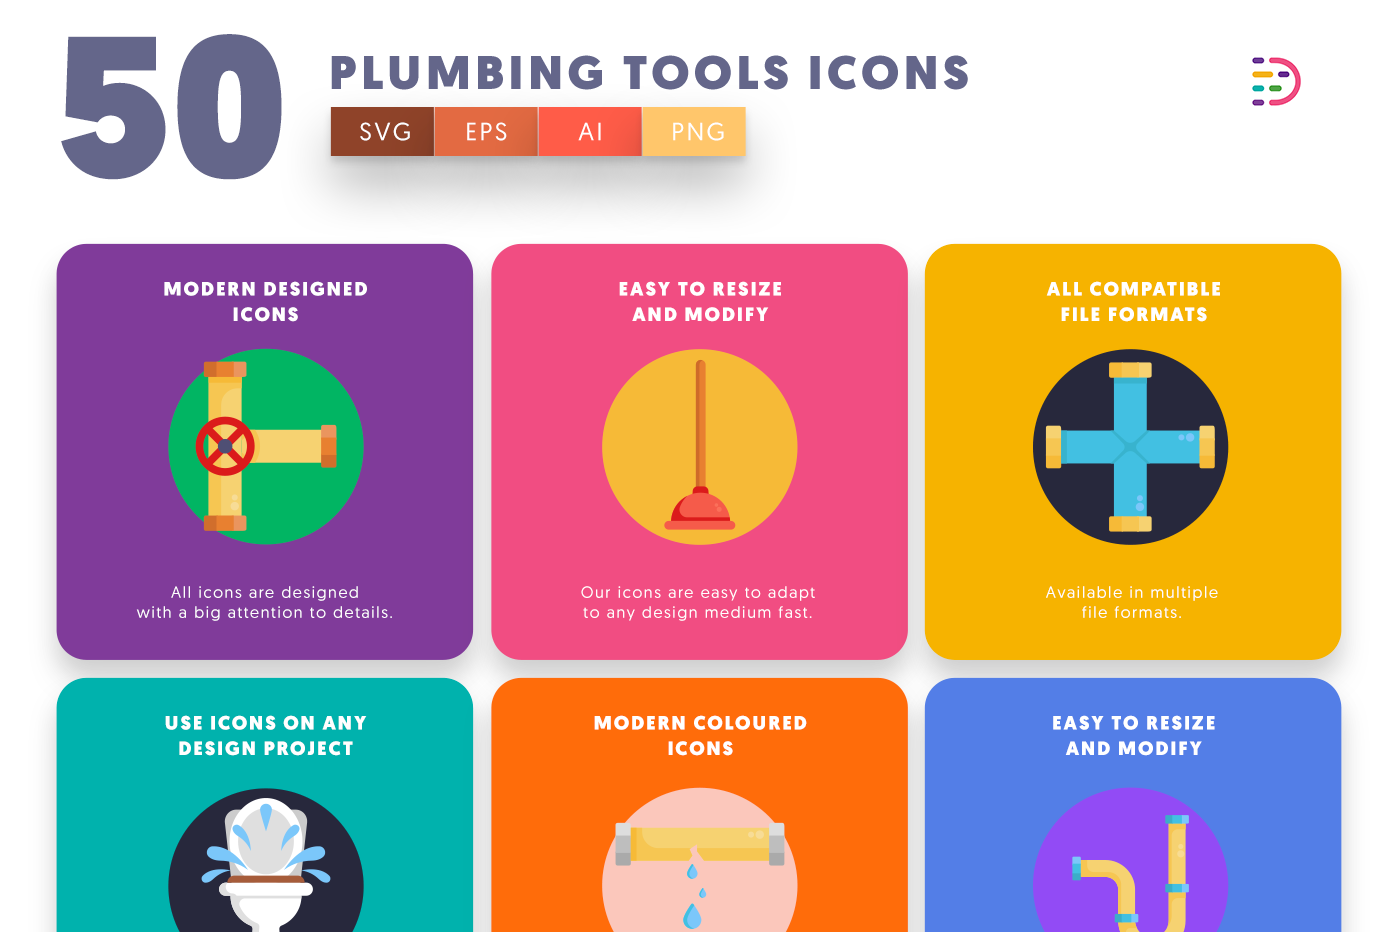 50 Plumbing Tools Icons with colored backgrounds